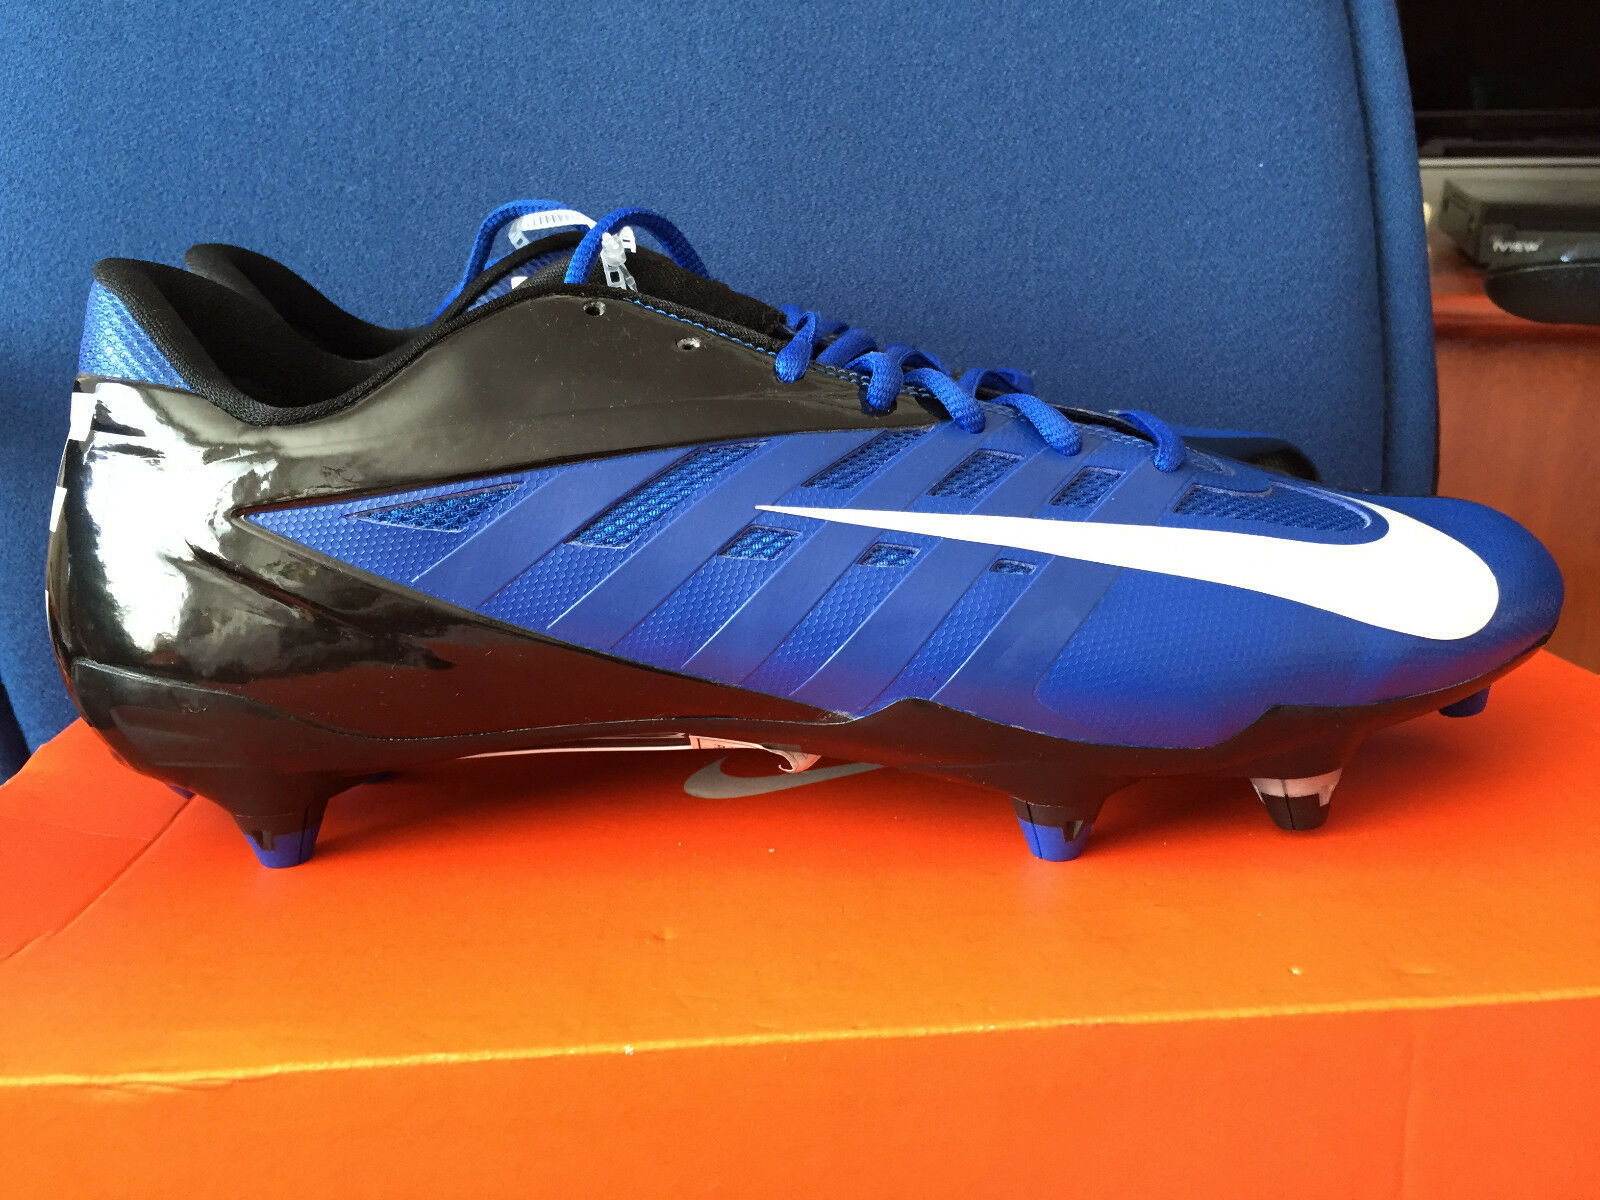 Nike Vapor Pro Low D NFL 511342-411 Blue Black NY Giants Football Cleats Price reduction  Special limited time